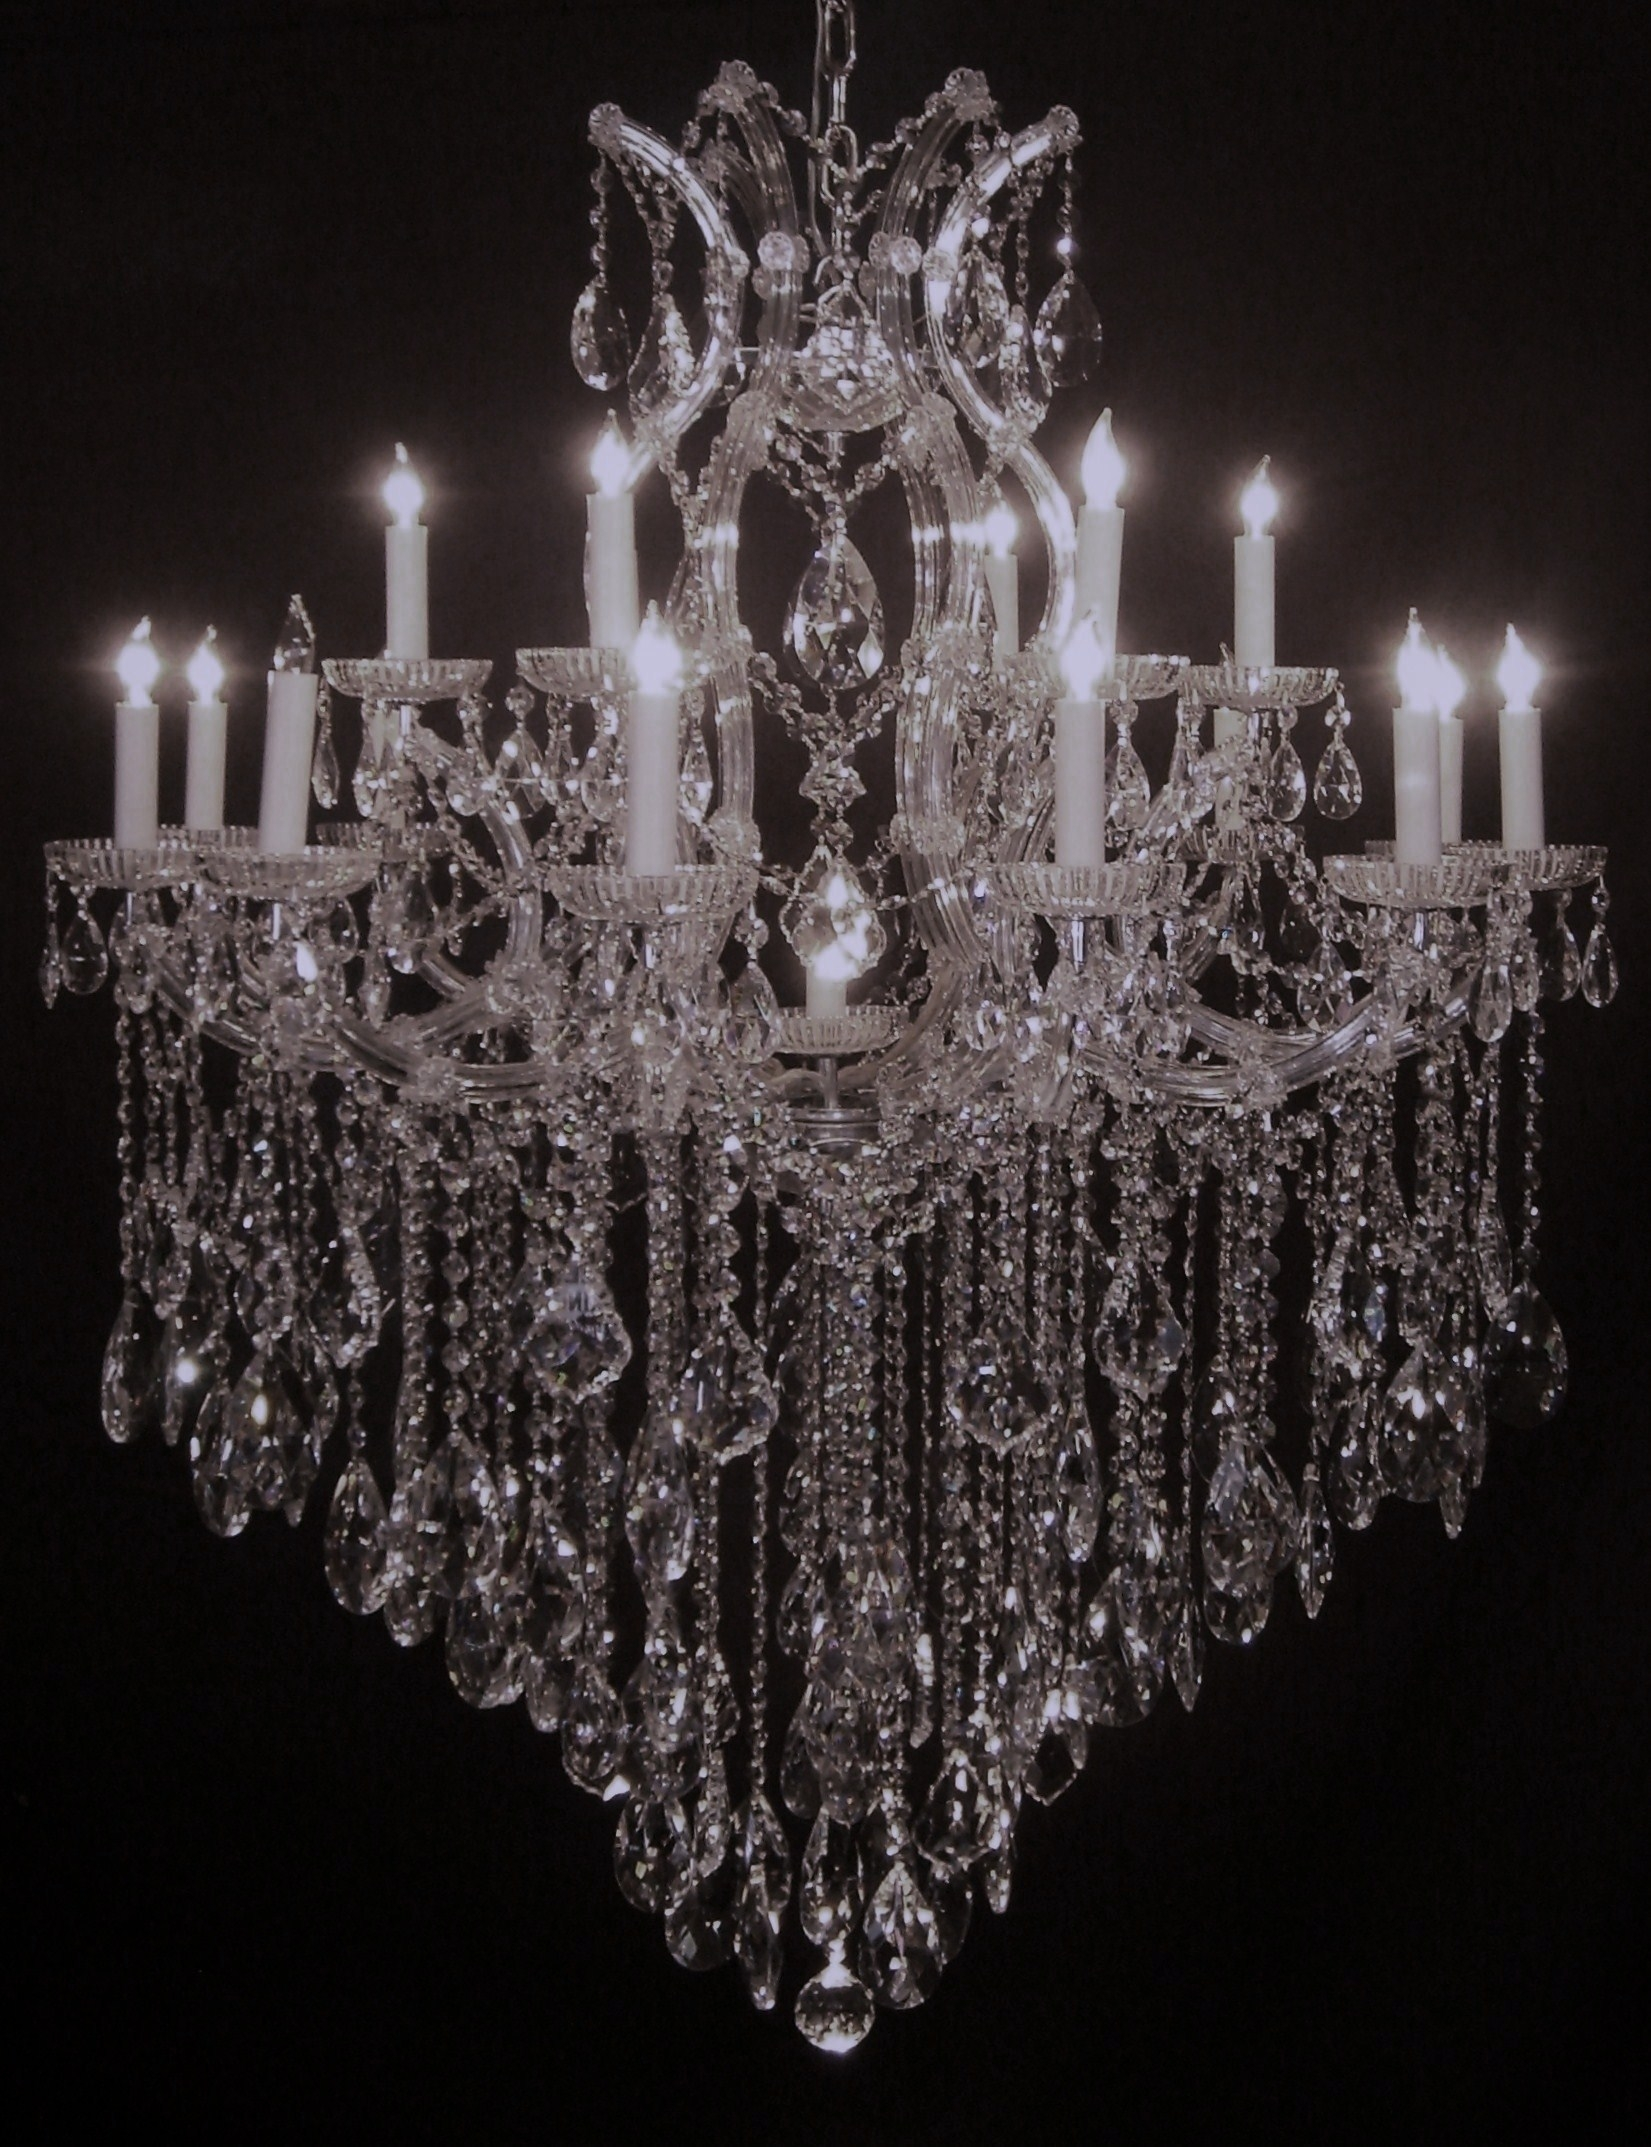 Chandelier Stunning Big Crystalandelier Picture Ideas Stock Photo Pertaining To Big Crystal Chandelier (View 11 of 12)